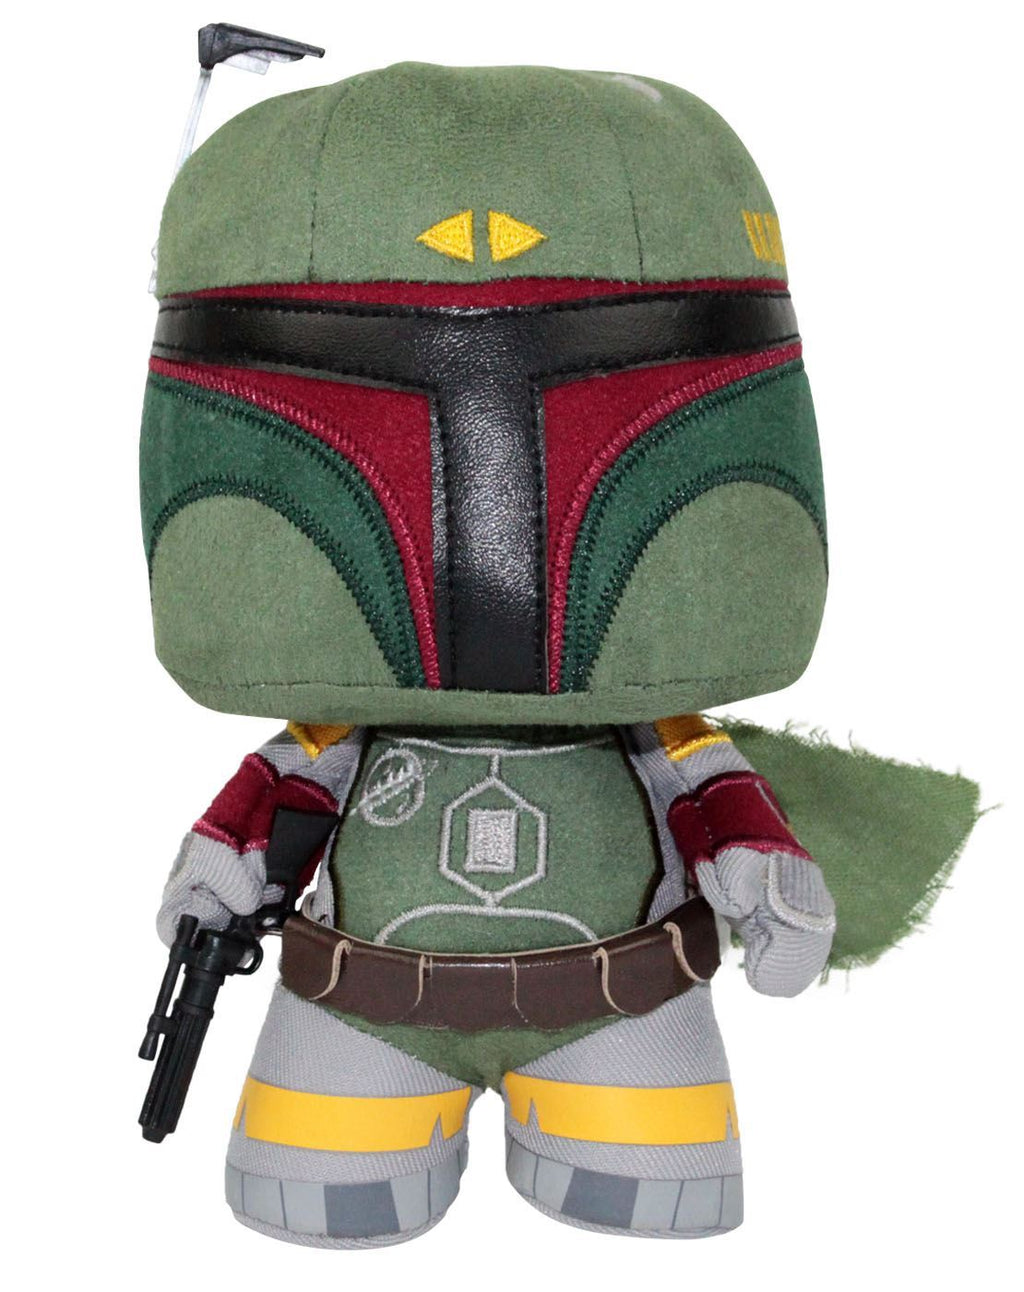 Funko Fabrikations Star Wars Boba Fett Plush Figure